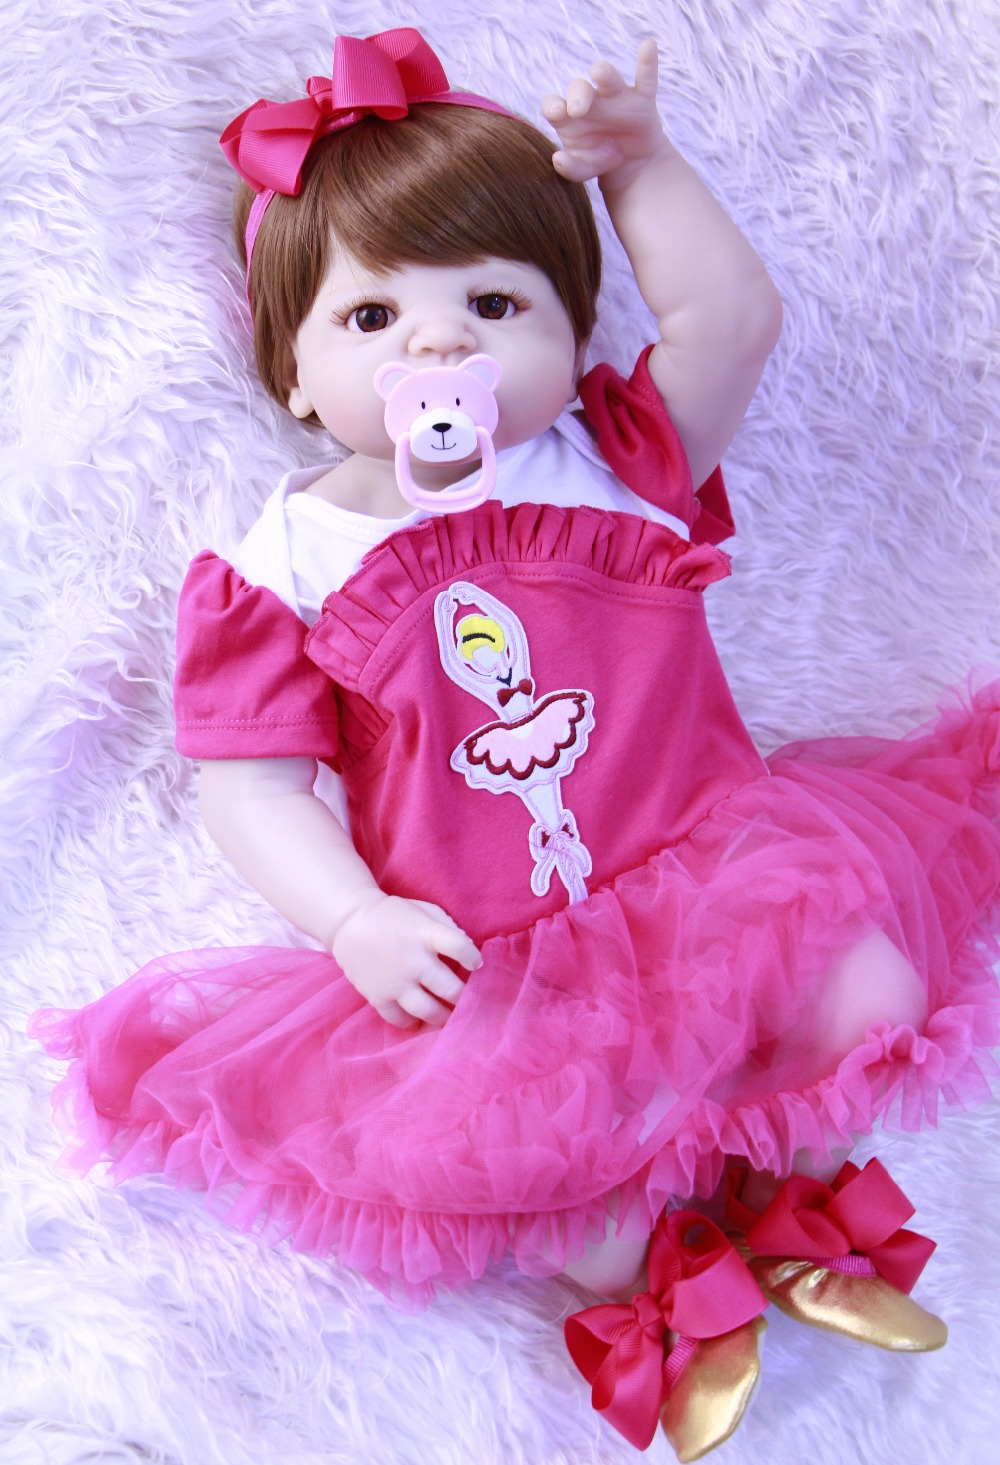 57CM Full Silicone Body Reborn Baby Doll Toy Newborn adorable menina vivid Doll Realistic Bebe Kid Brinquedos Bathe Toy for sale57CM Full Silicone Body Reborn Baby Doll Toy Newborn adorable menina vivid Doll Realistic Bebe Kid Brinquedos Bathe Toy for sale